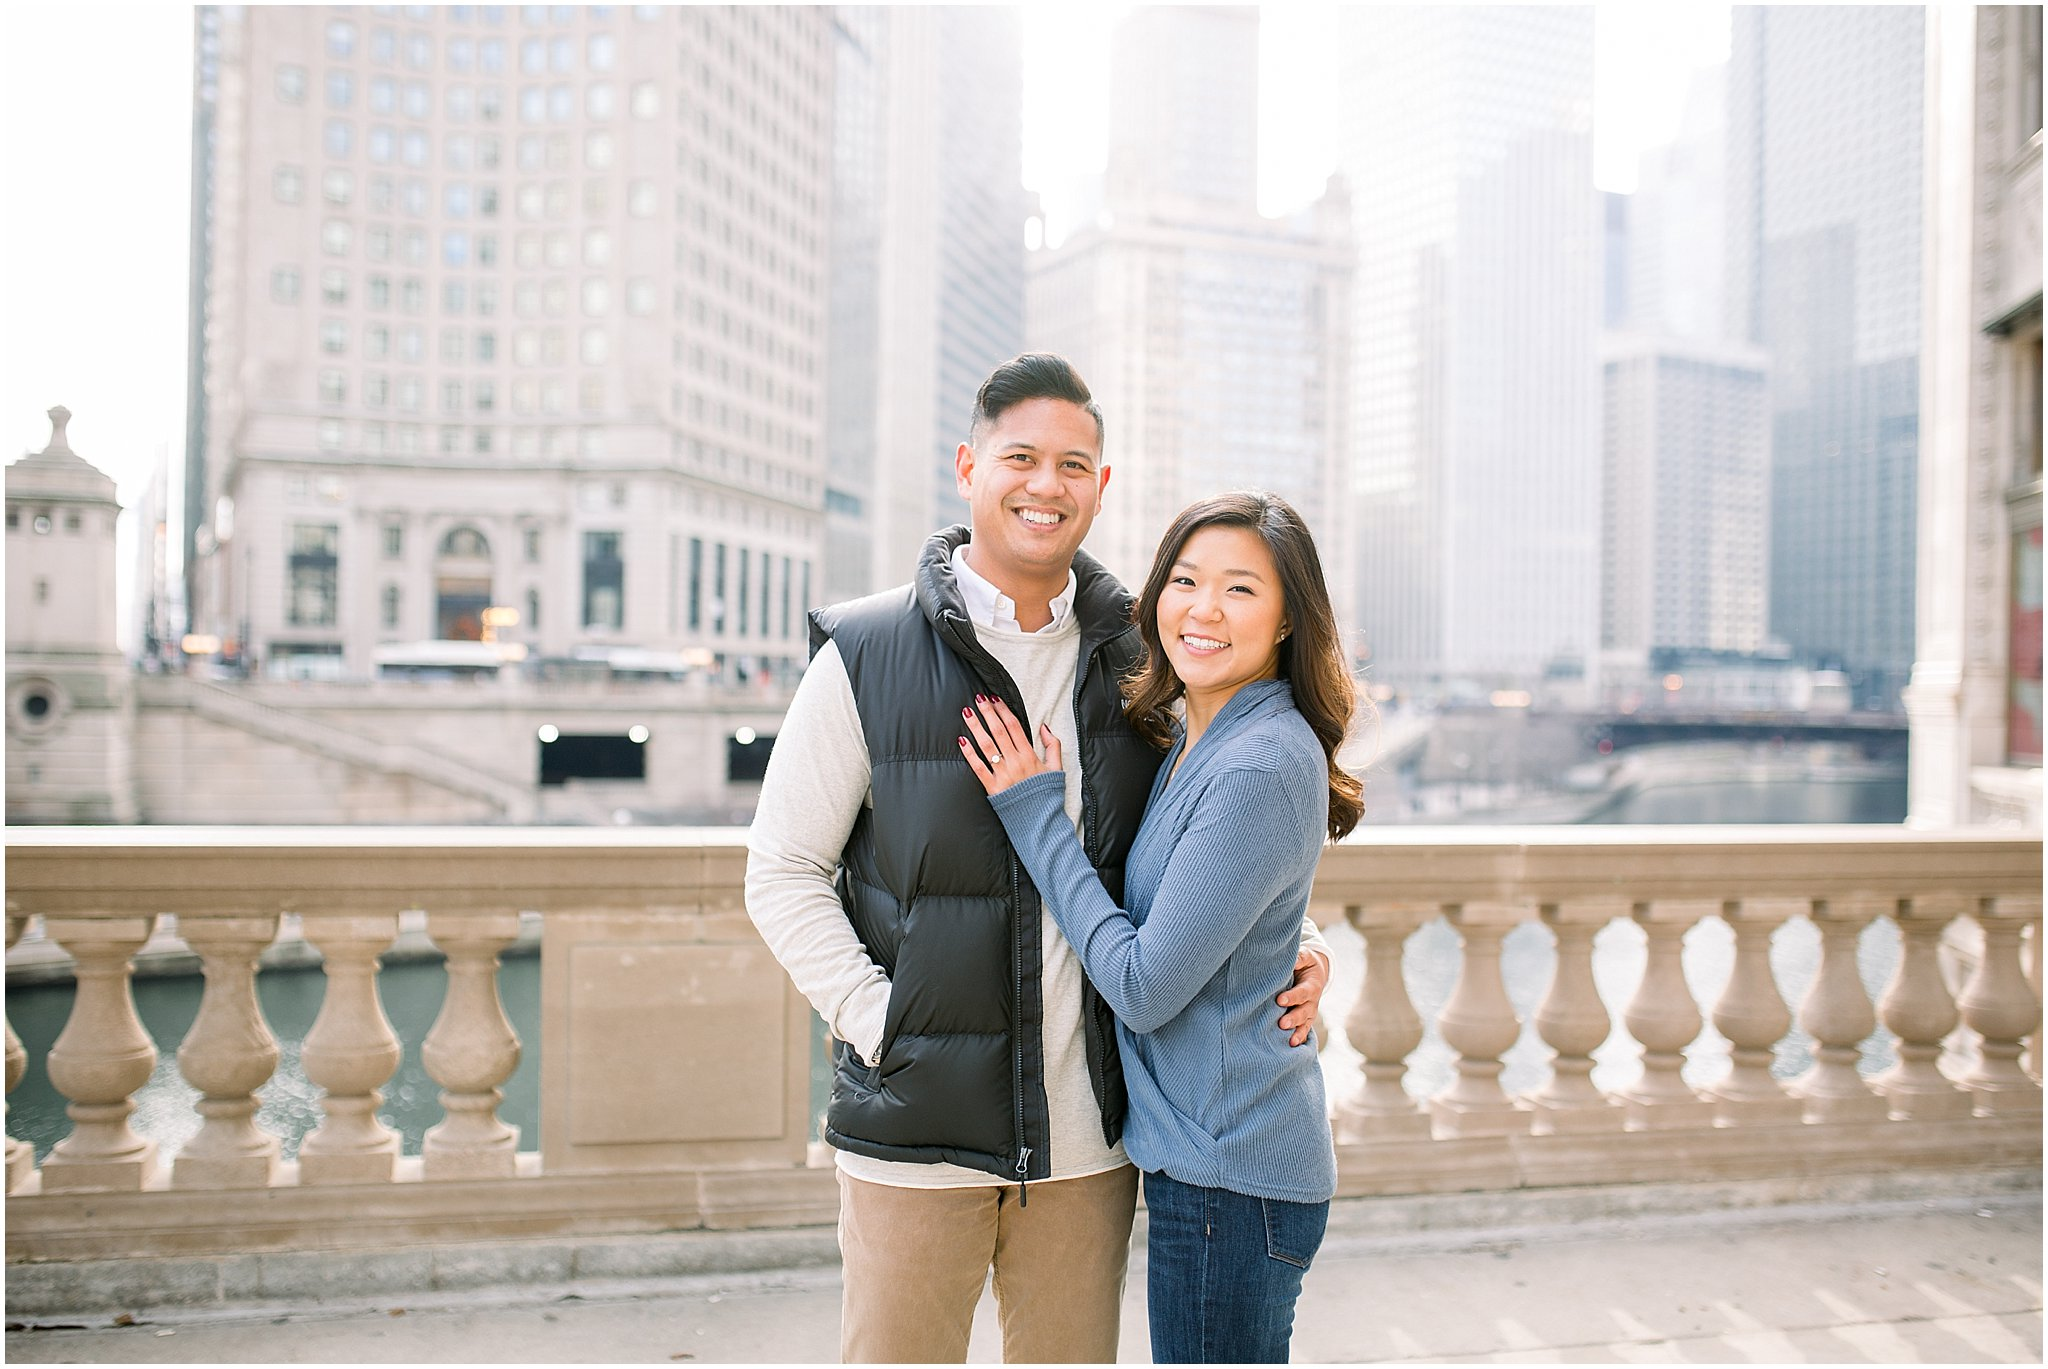 winter-downtown-engagement-session_0015.jpg